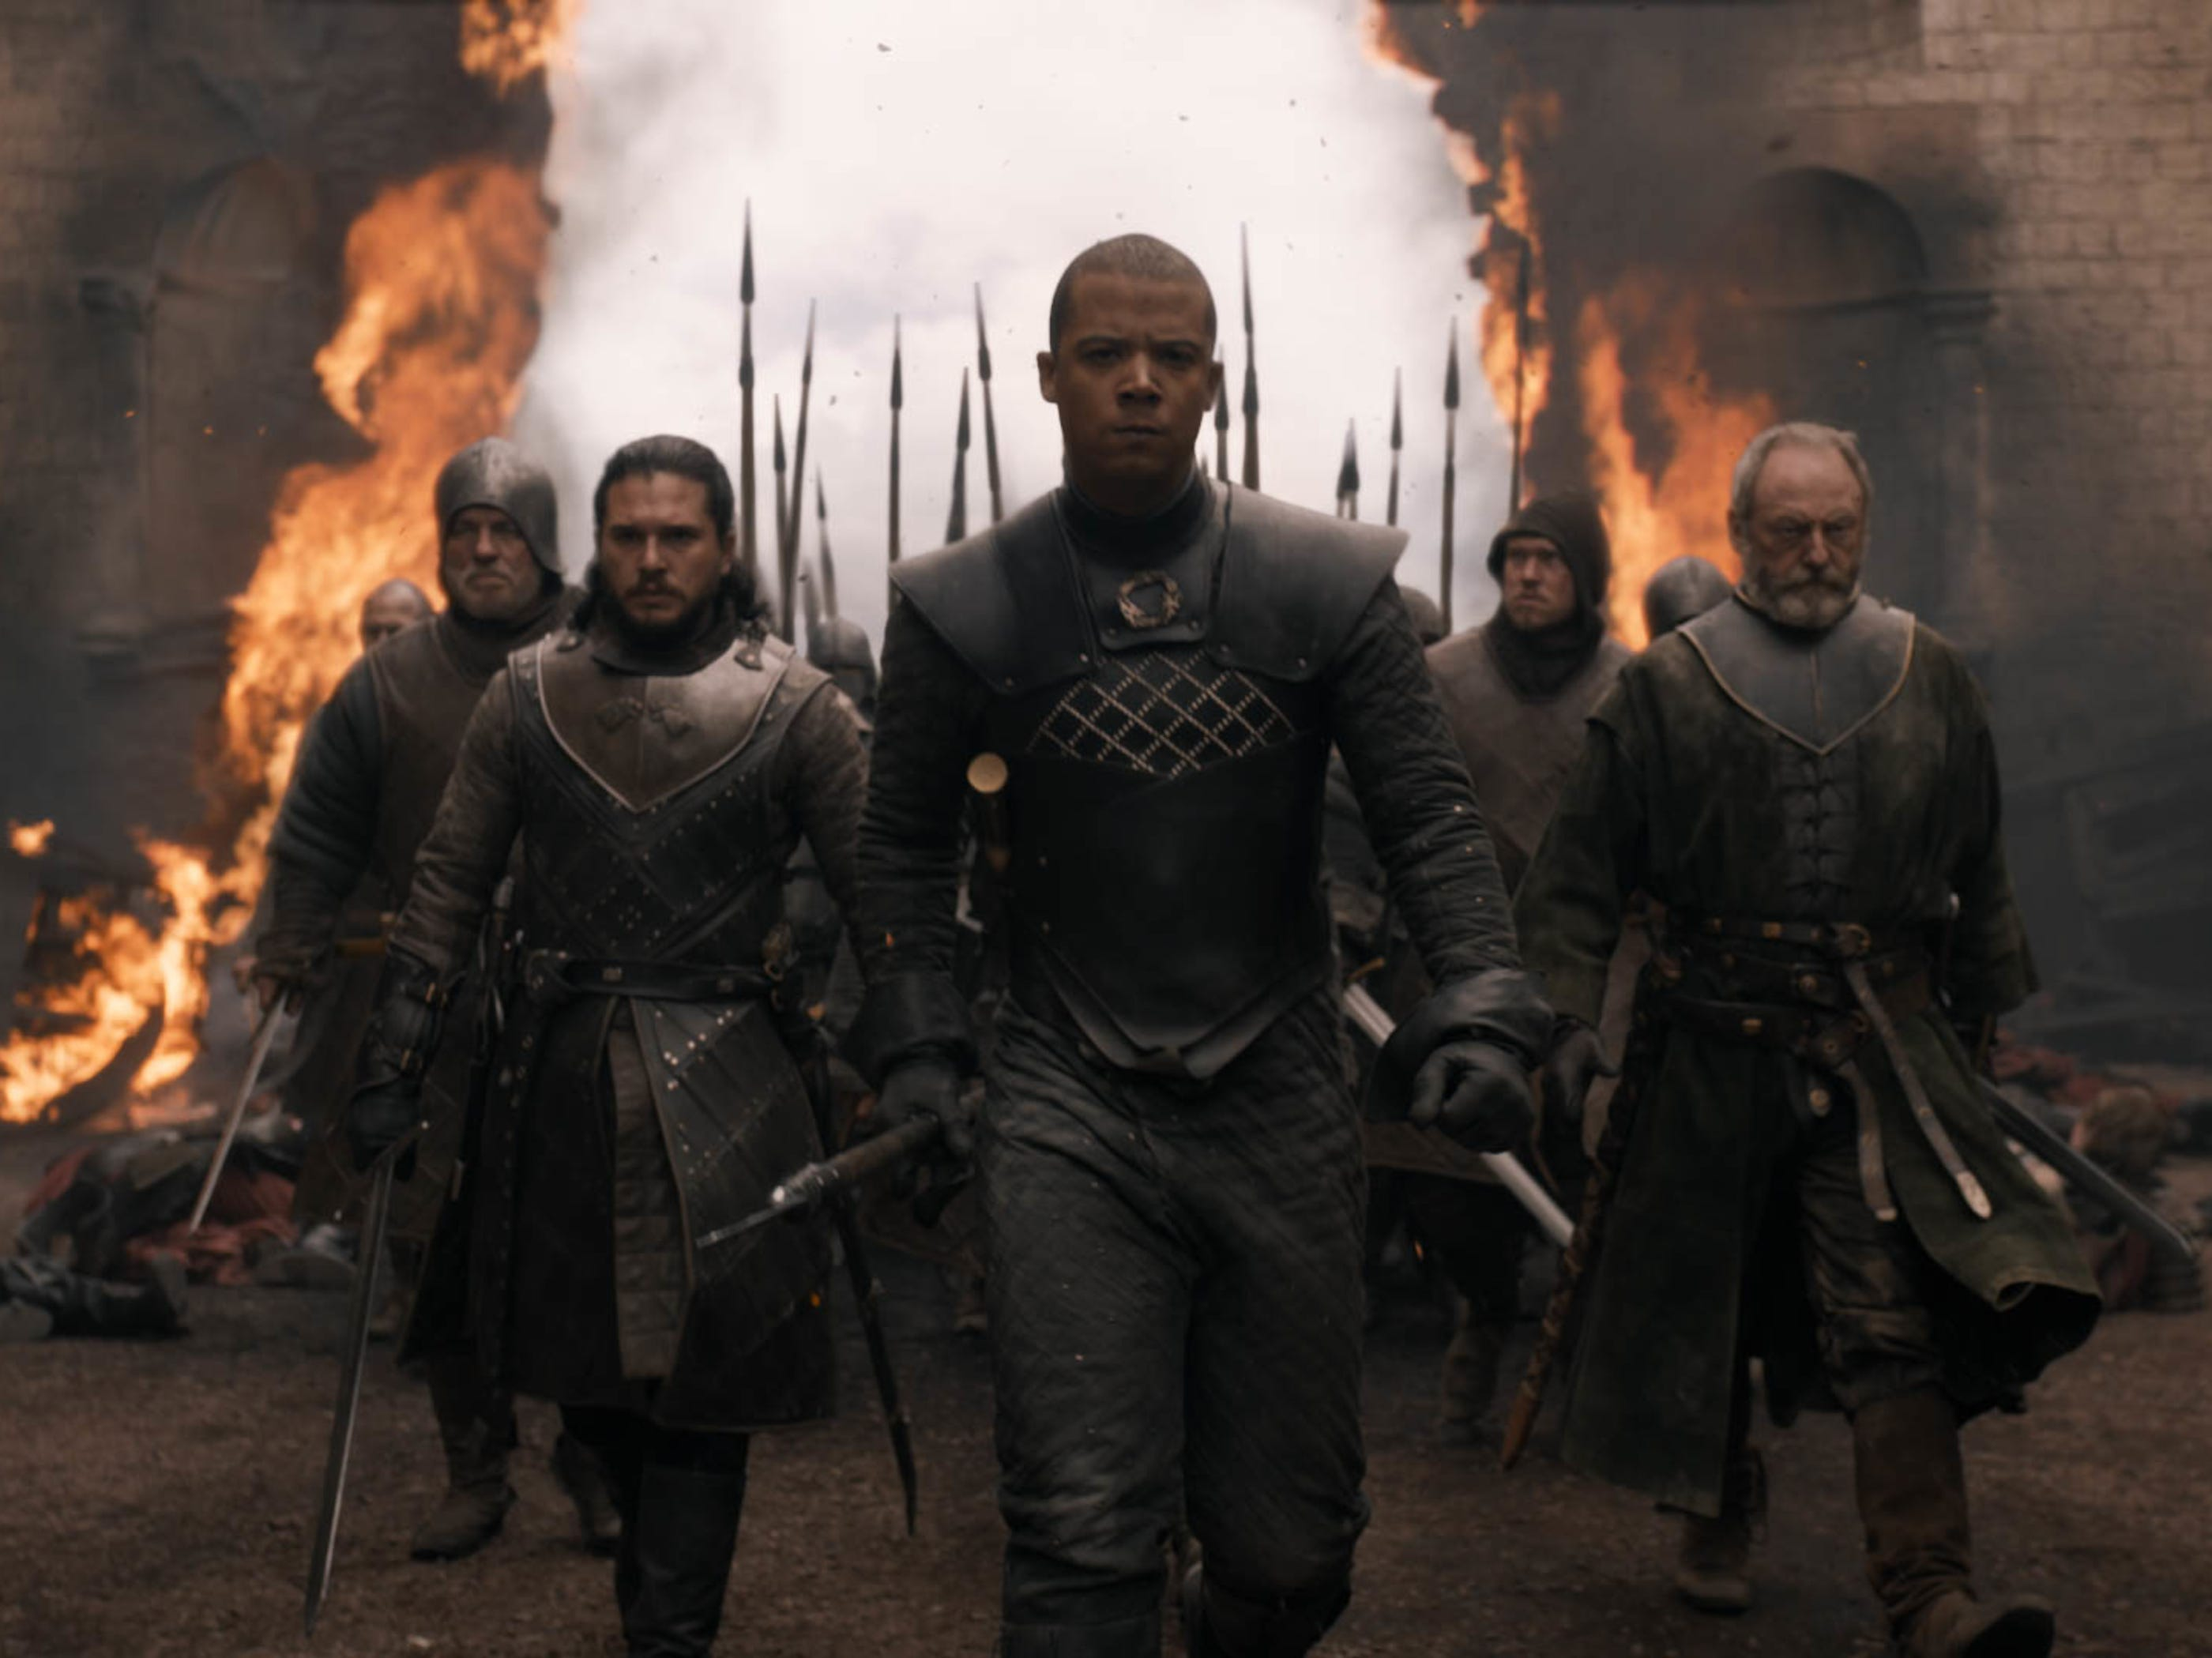 Jon Snow (Kit Harington), left, Grey Worm (Jacob Anderson) and Davos Seaworth (Liam Cunningham) march into King's Landing after Drogon burns the gate.